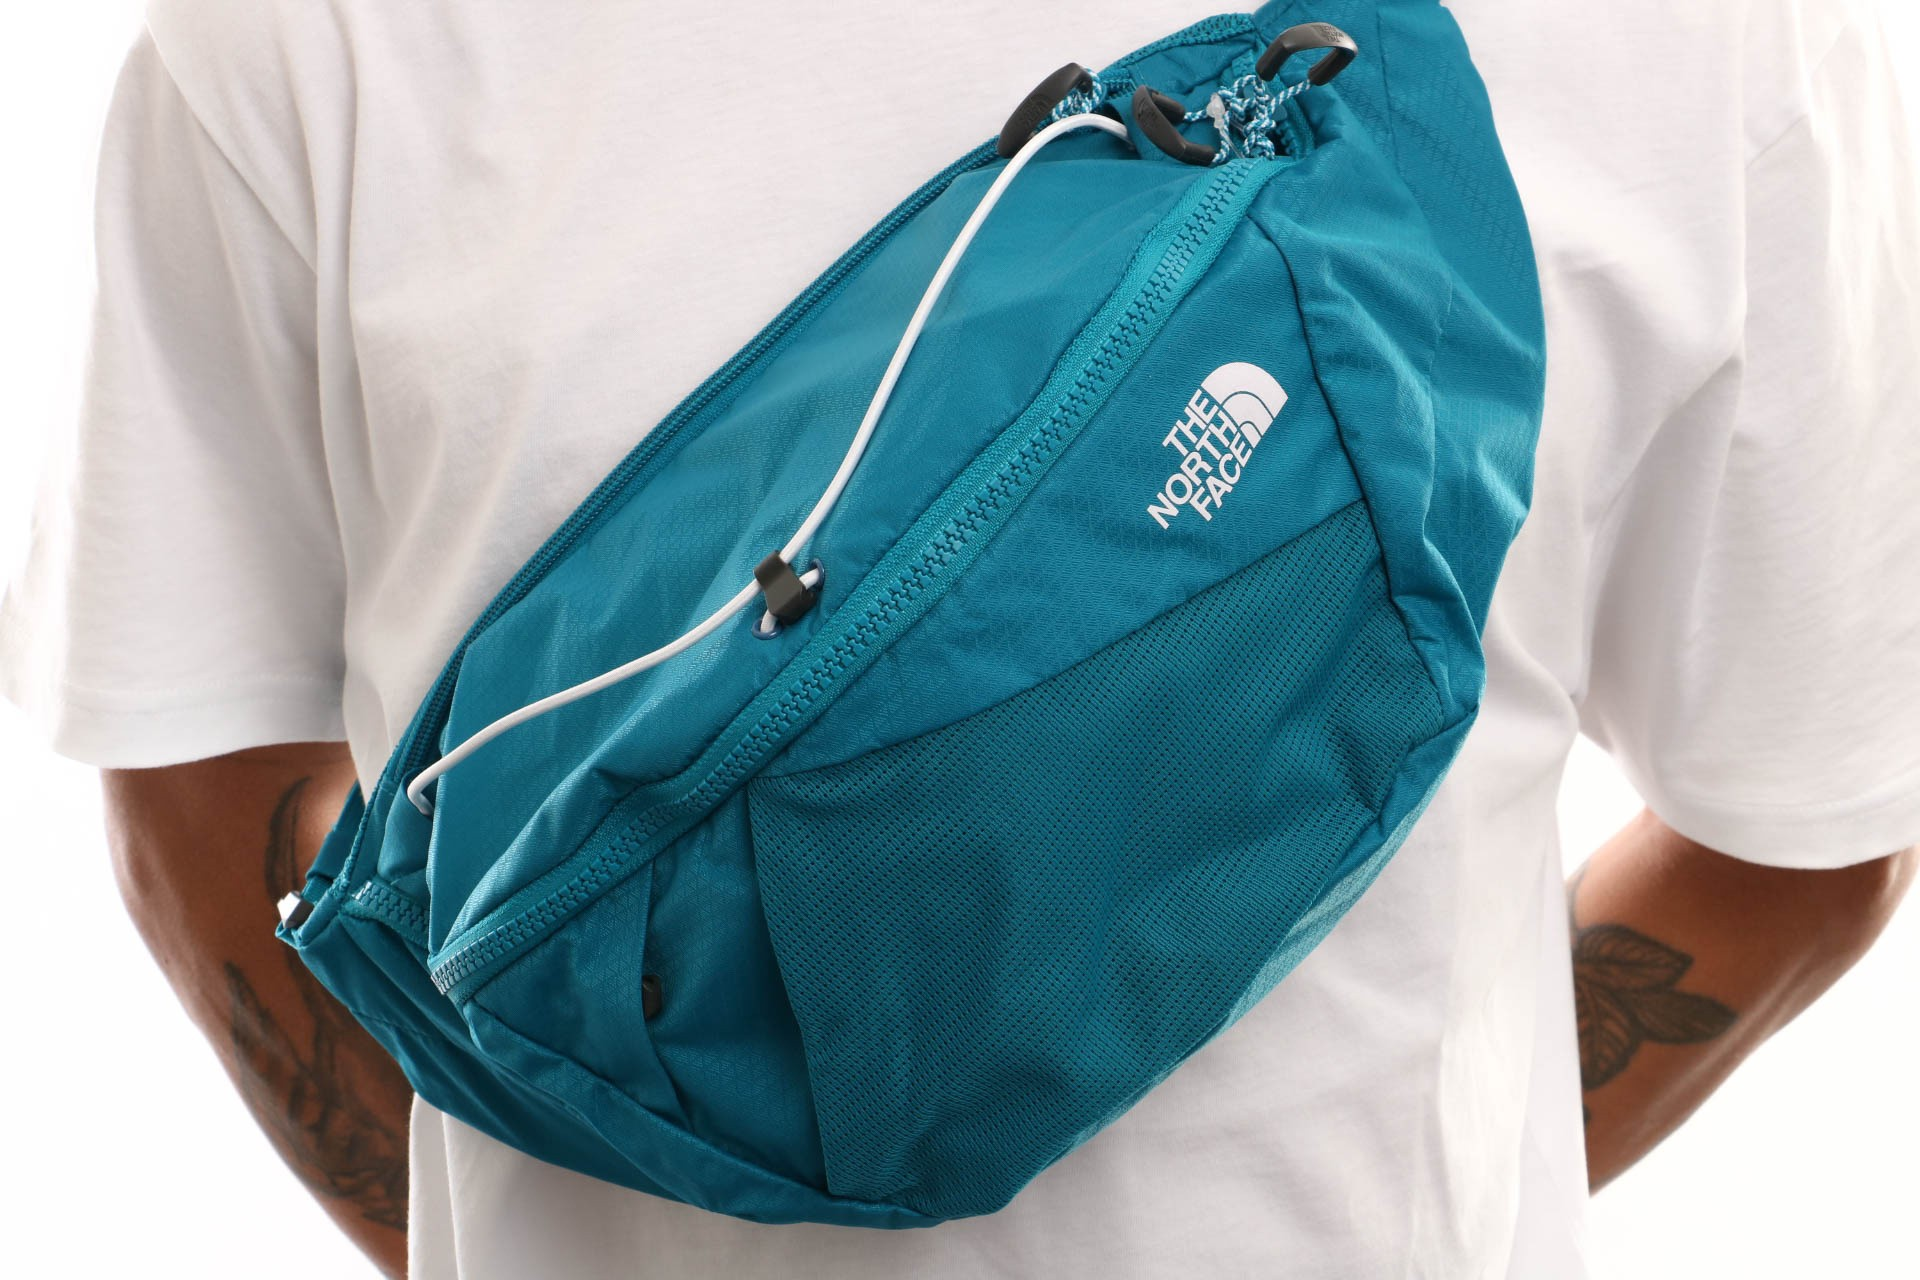 Afbeelding van The North Face Lumbnical - L T93S7Ybg2 Heuptas Crystal Teal/Tnf White